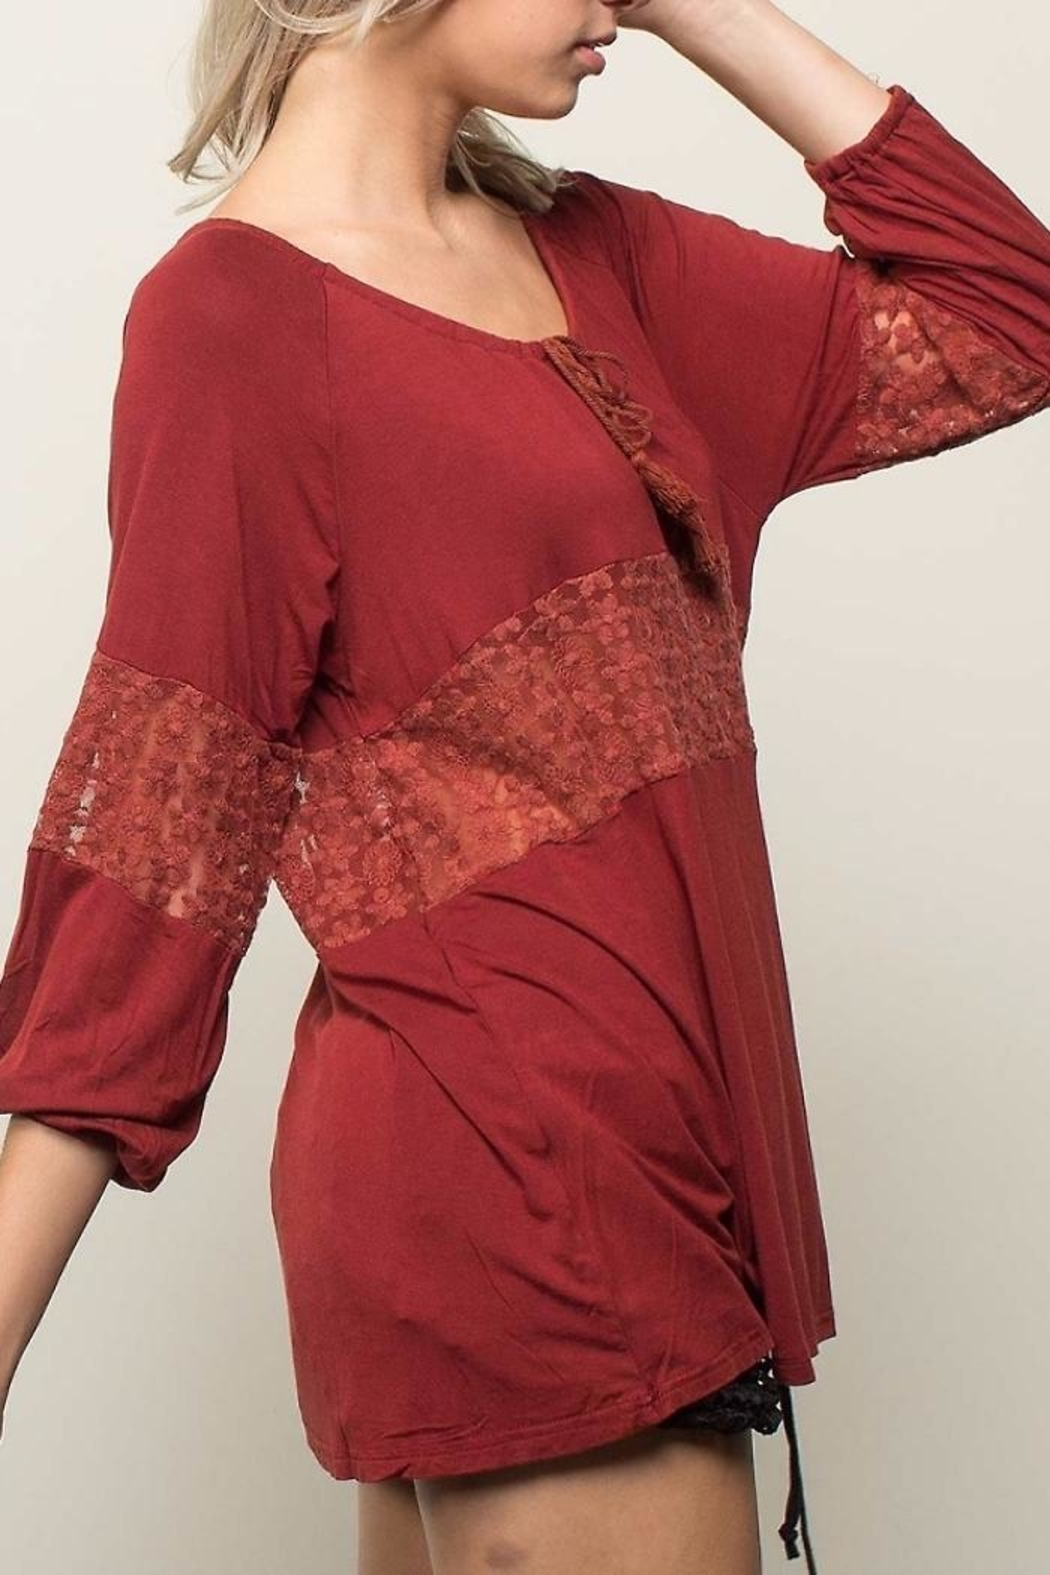 People Outfitter Retro Romance Top - Front Full Image